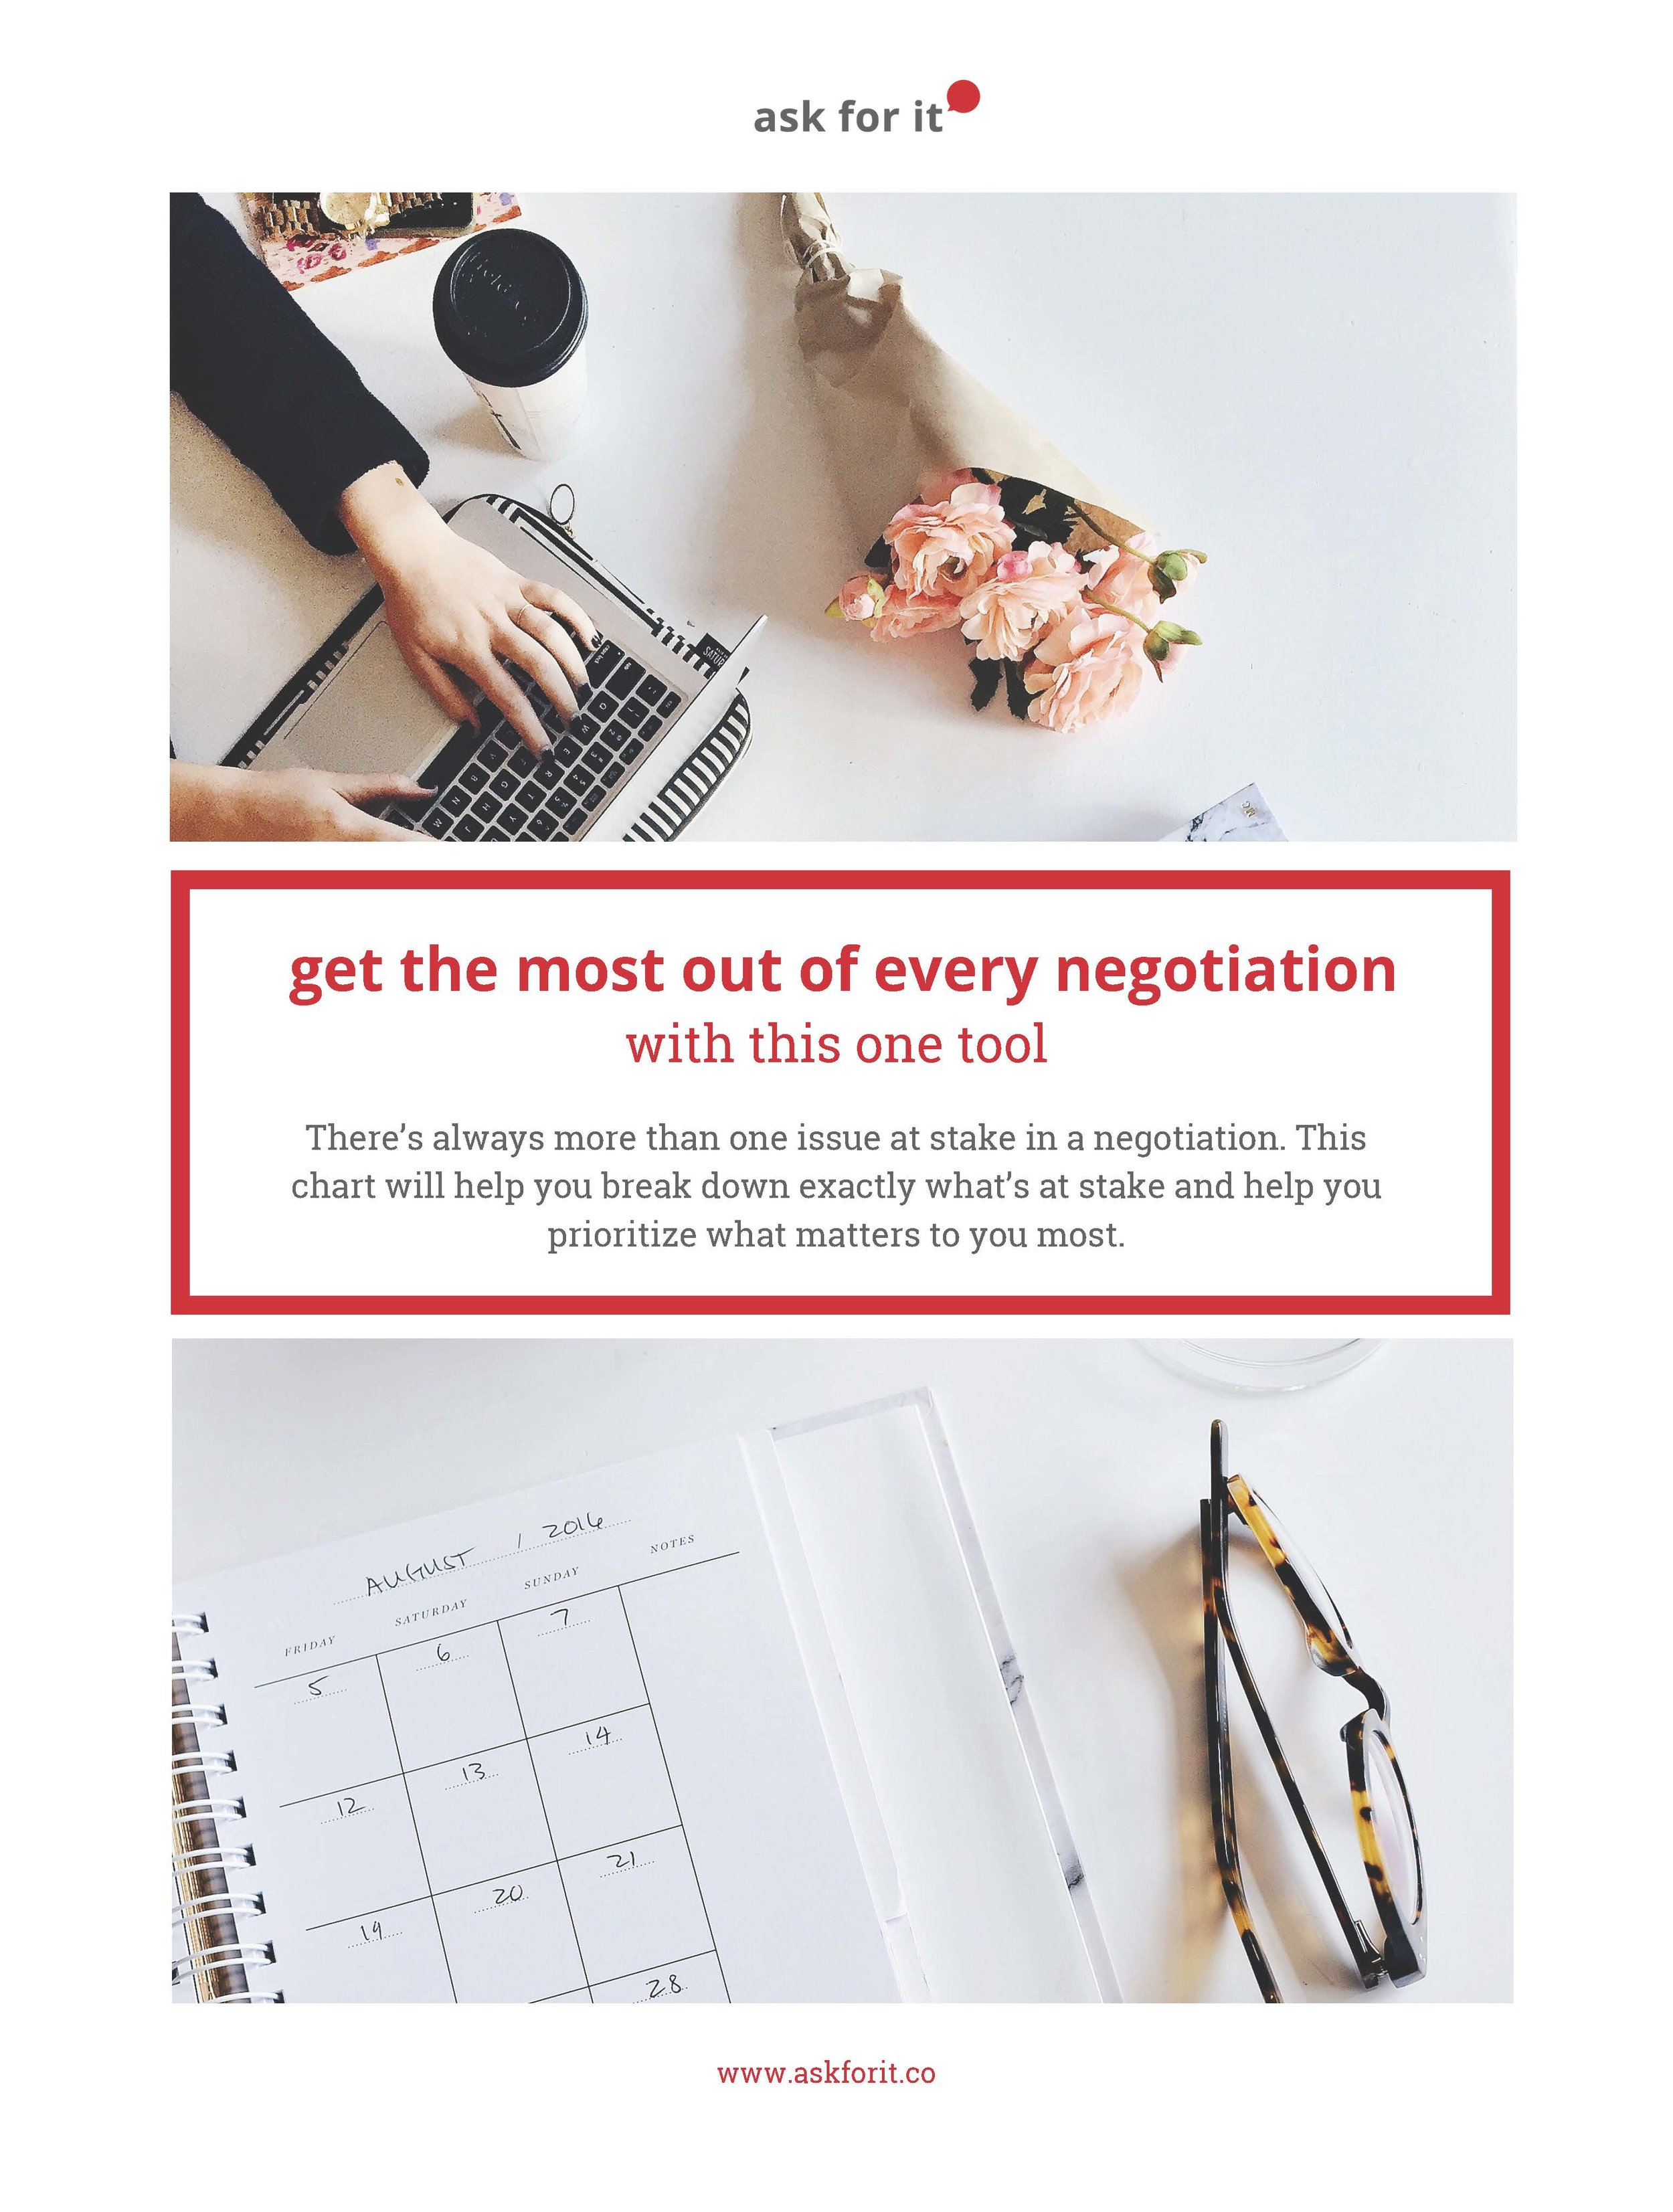 ask for it — get the most out of every negotiation_Page_1.jpg